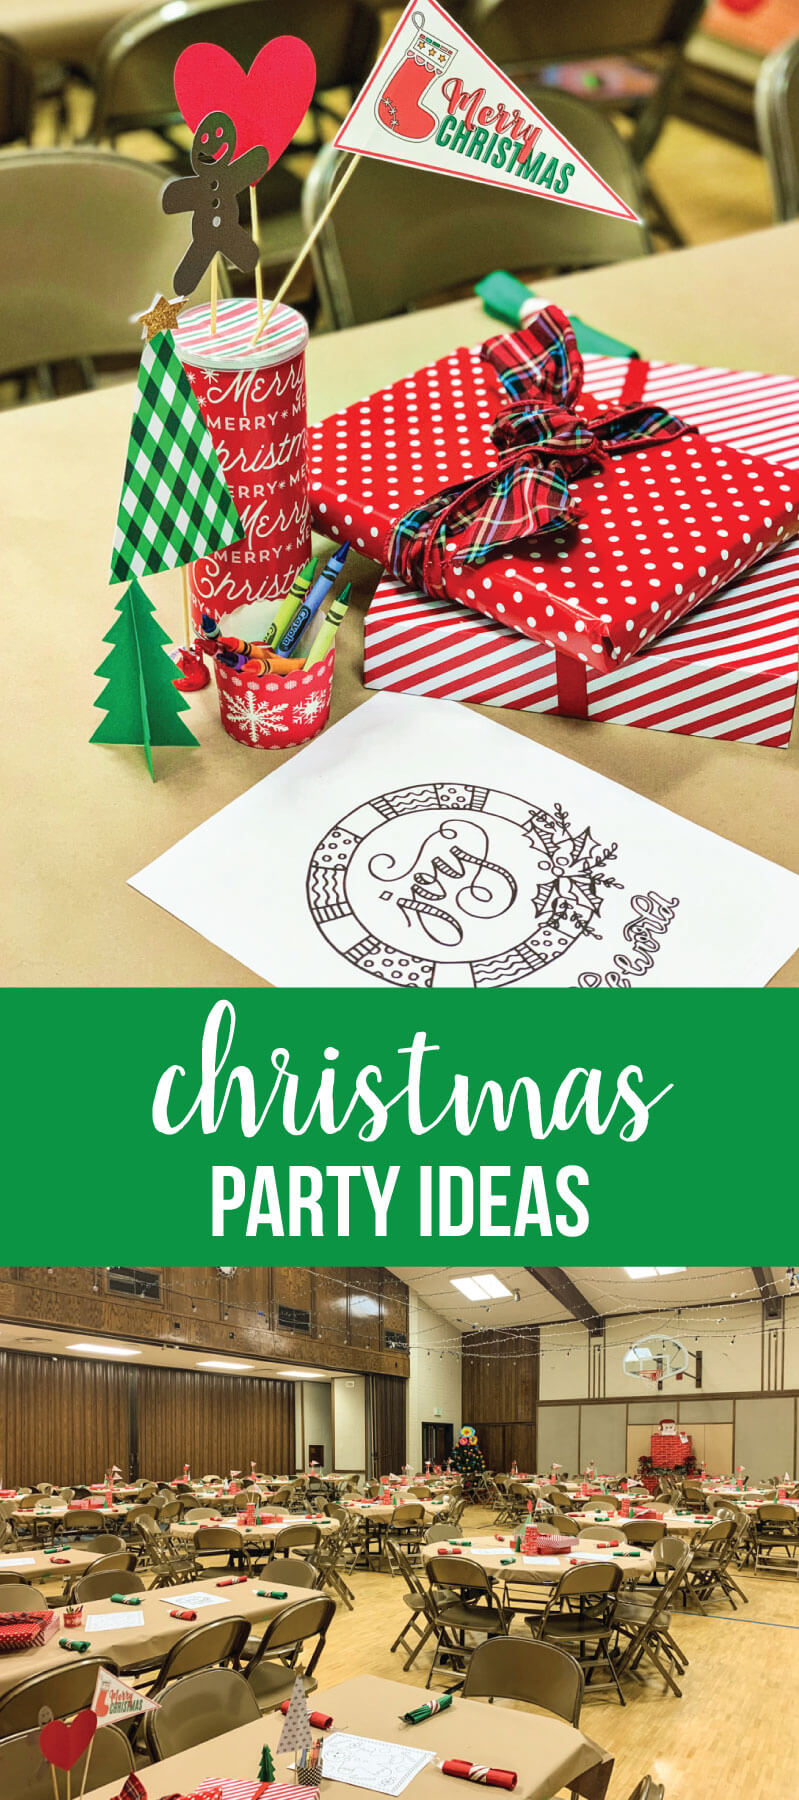 Christmas Party Ideas - things to make and do for a fun party!